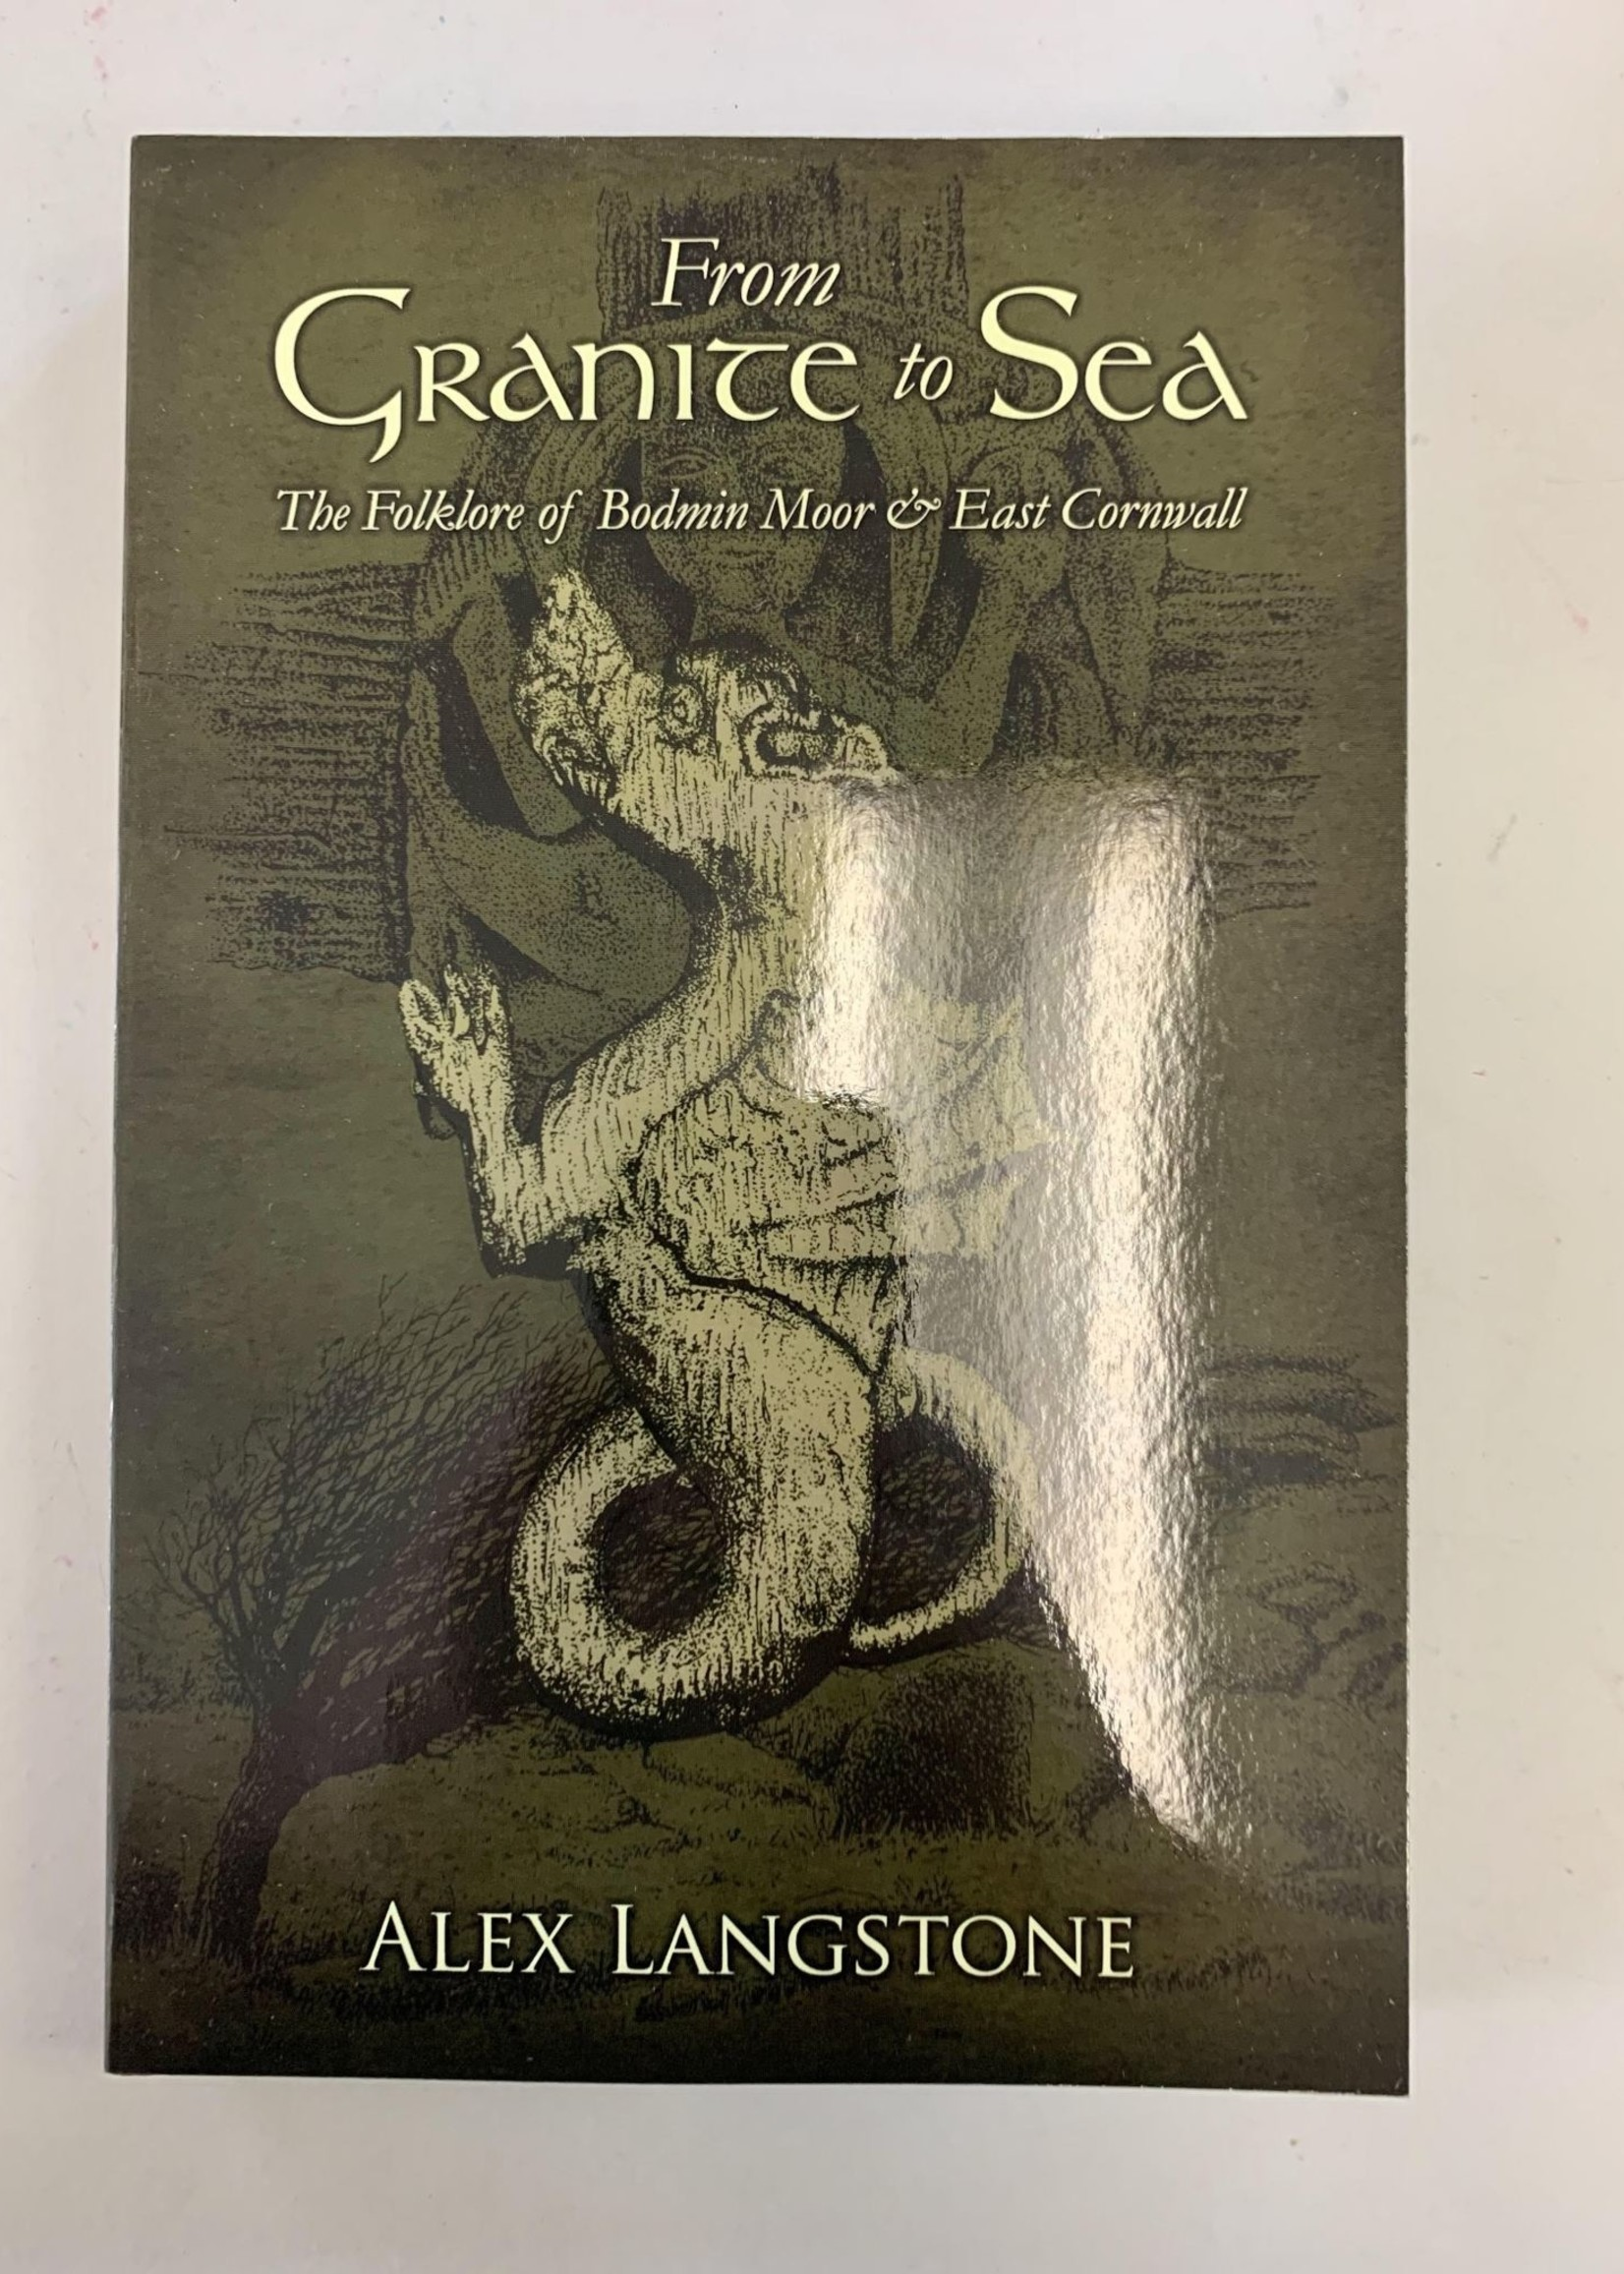 From Granite to Sea - BY ALEX LANGSTONE